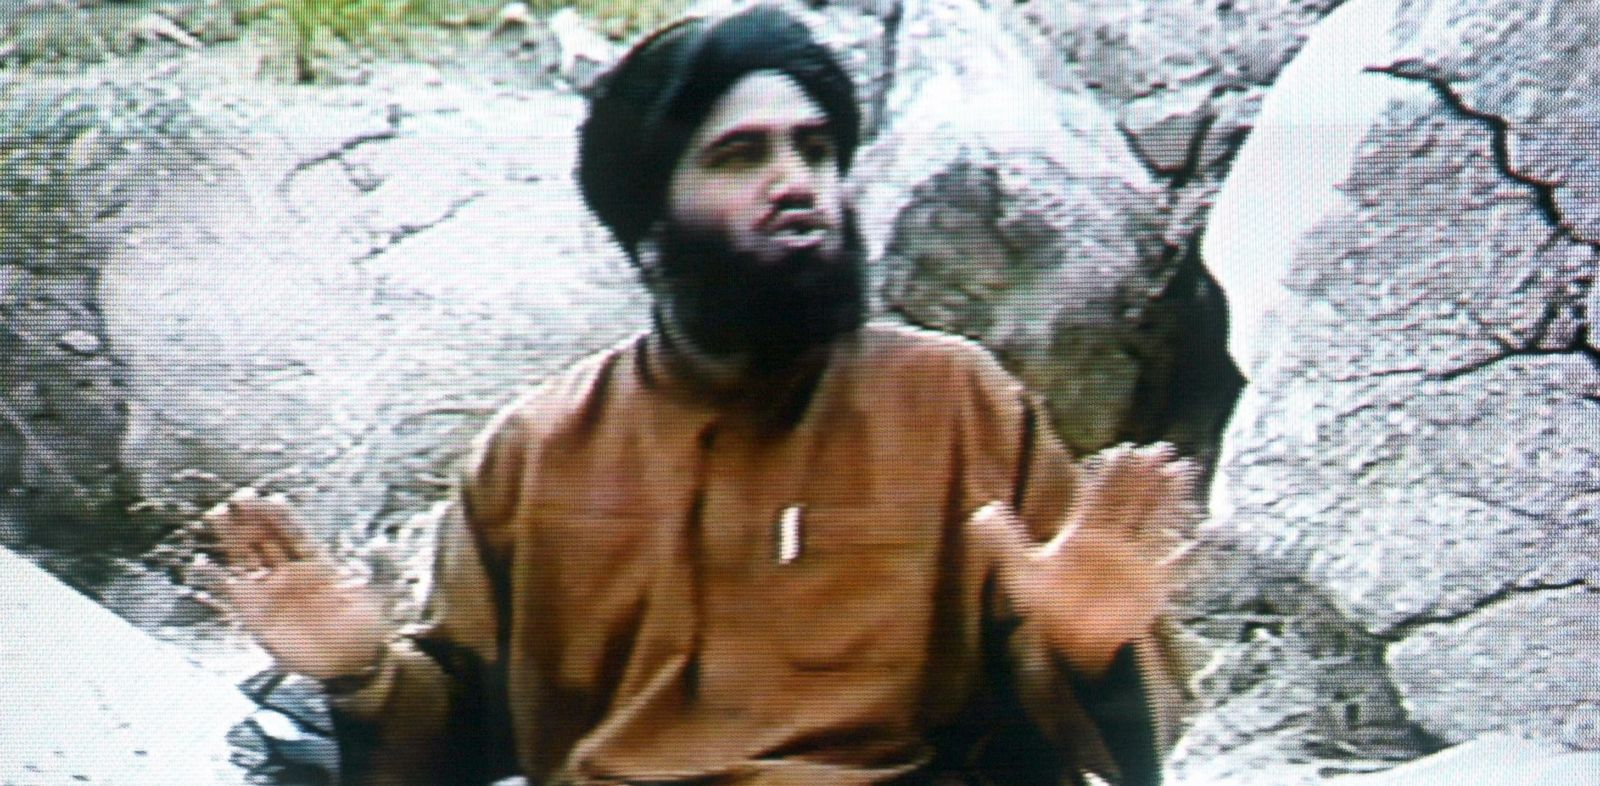 PHOTO: Sulaiman Abu Ghaith is pictured in a frame from the Middle East Broadcasting Center, which was first televised on Apr. 17, 2002.